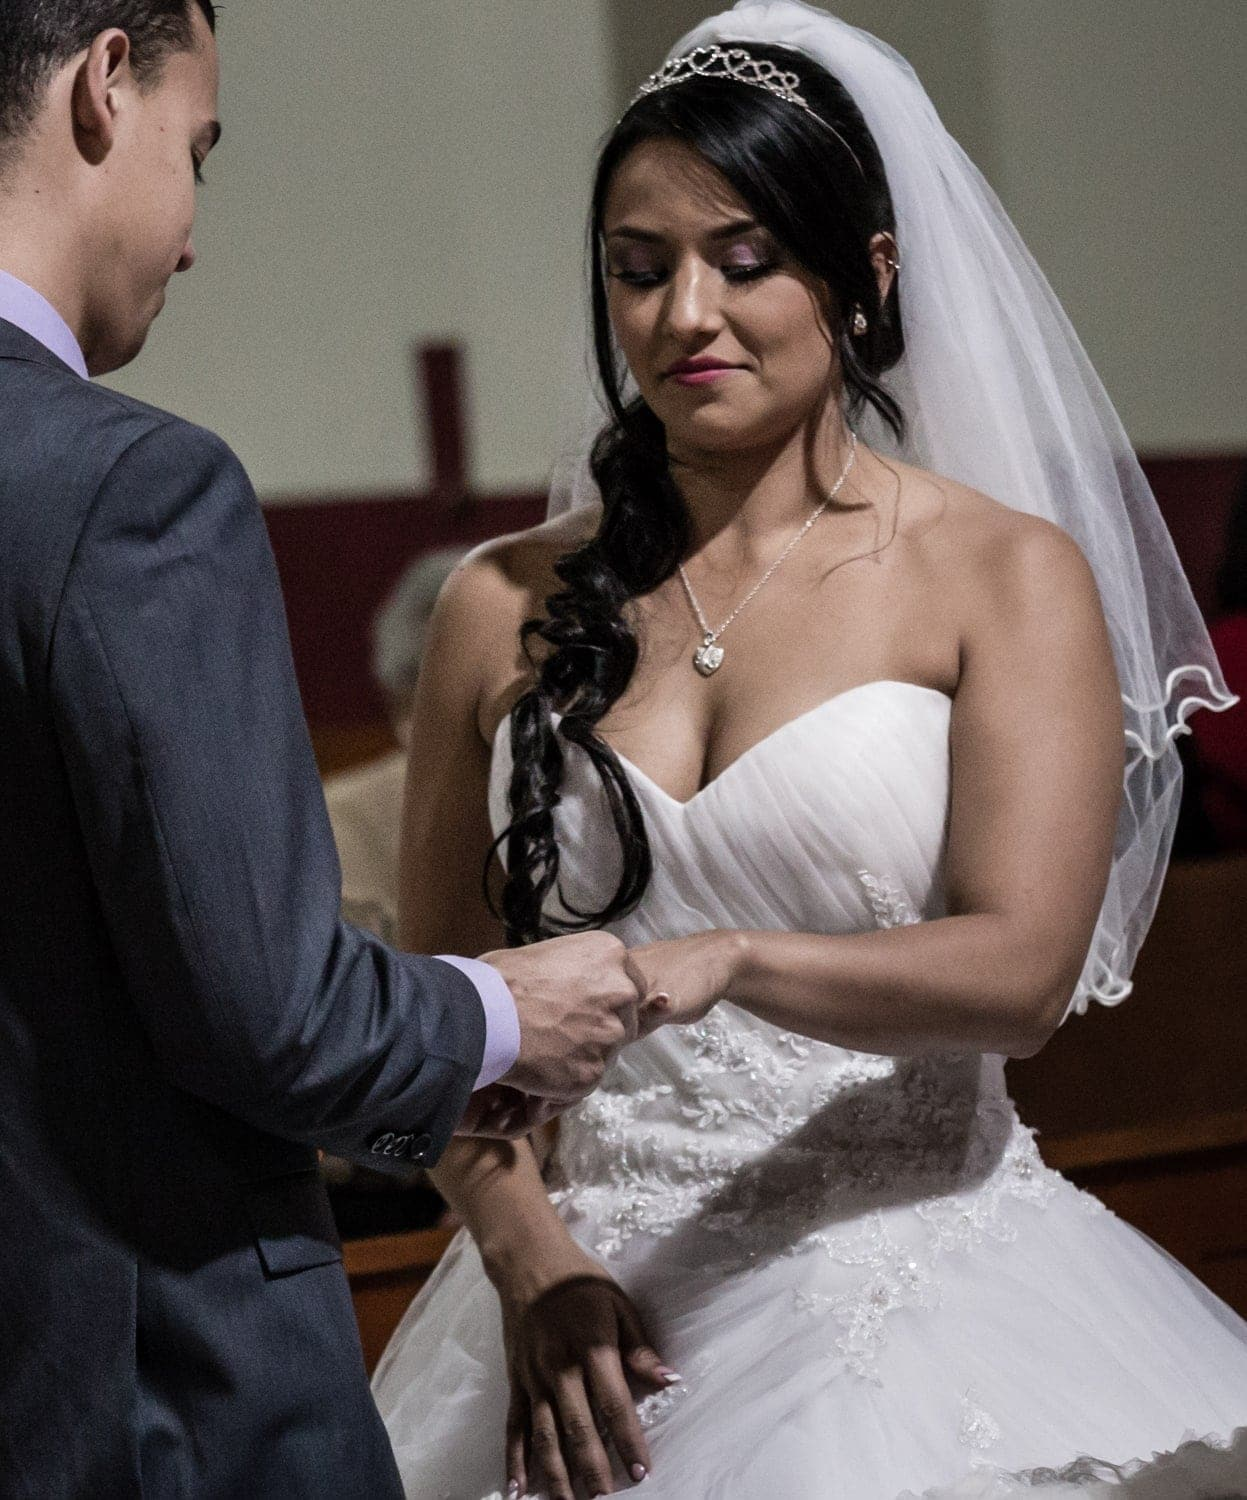 Couple exchanges wedding bands during ceremony in Costa Rica.